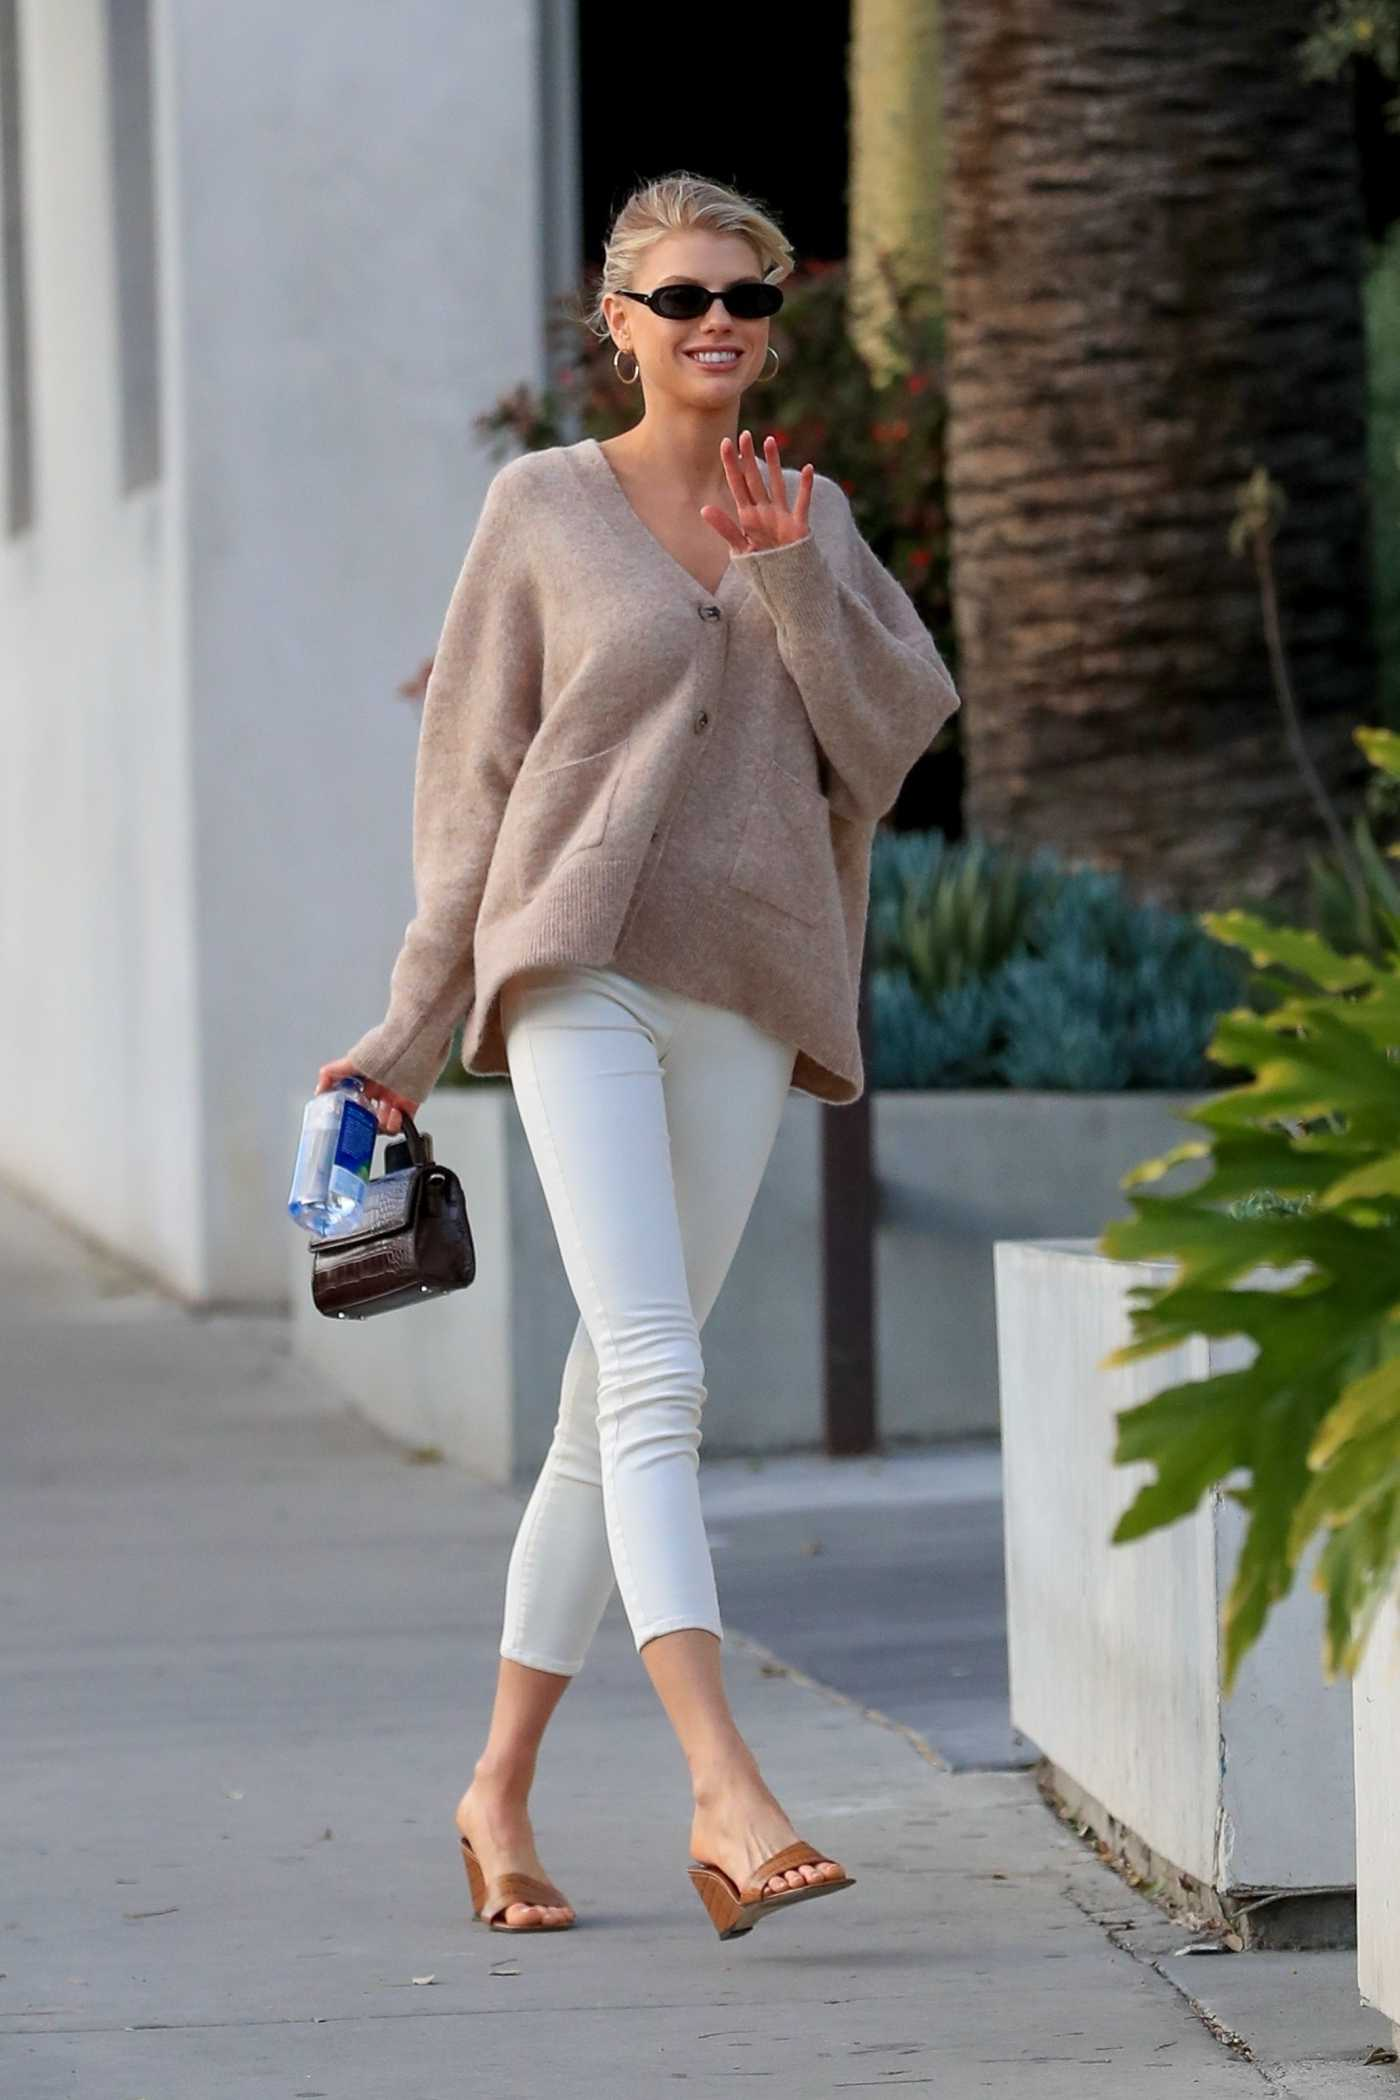 Charlotte McKinney in a Beige Cardigan Arrives at the Cha Cha Matcha in Los Angeles 08/11/2020